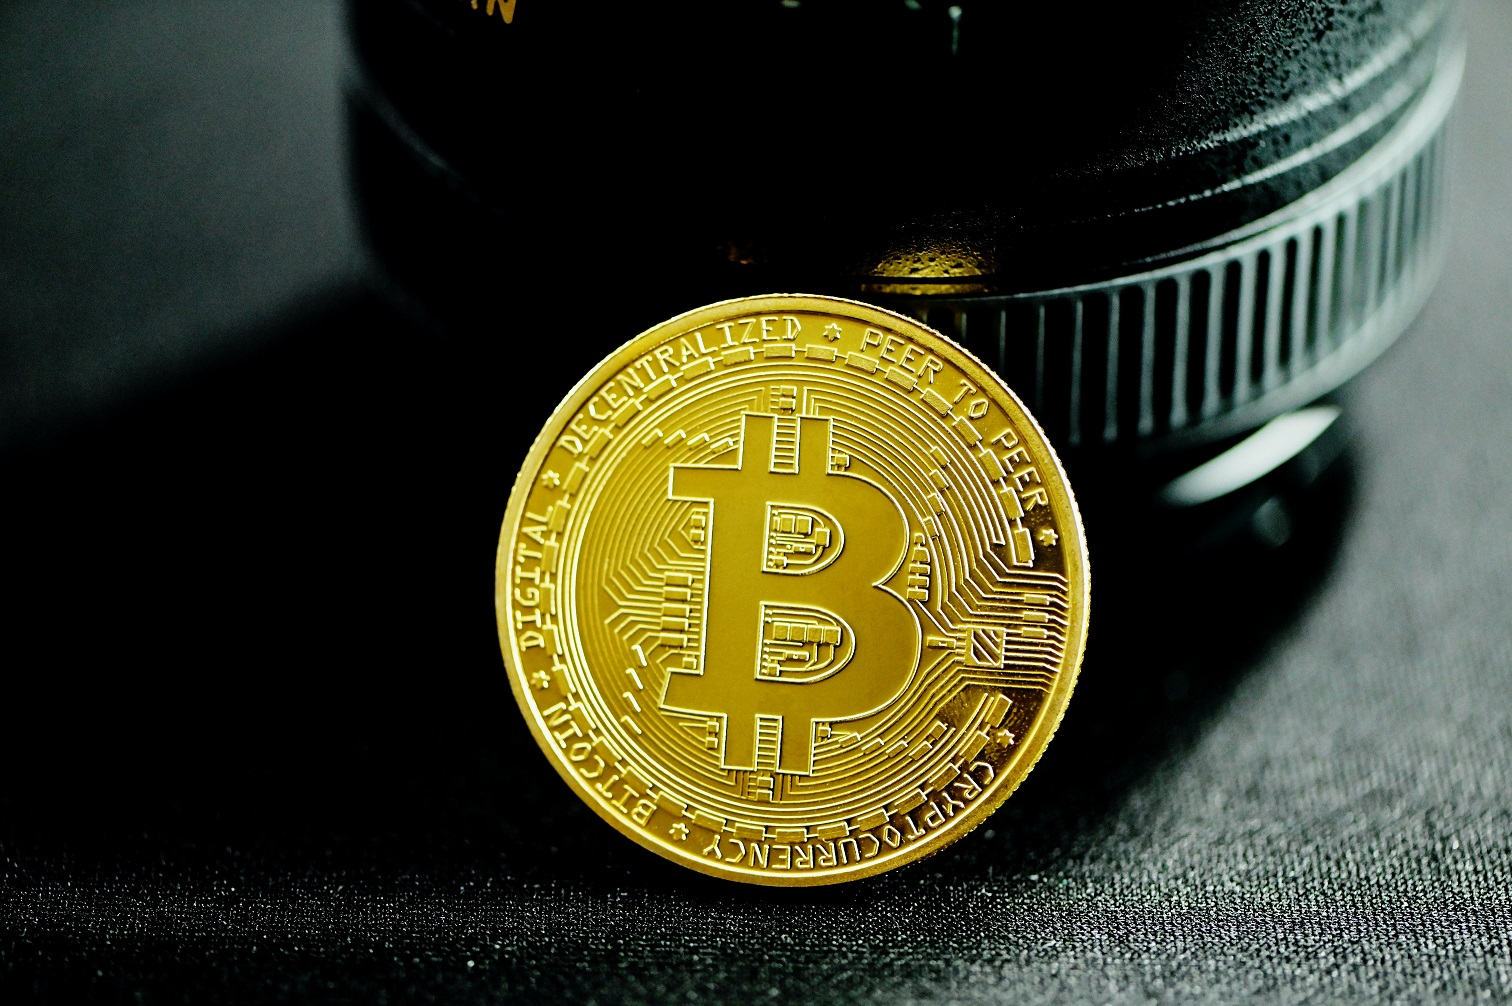 South African Brothers Escape With $3.6 Billion In Bitcoin